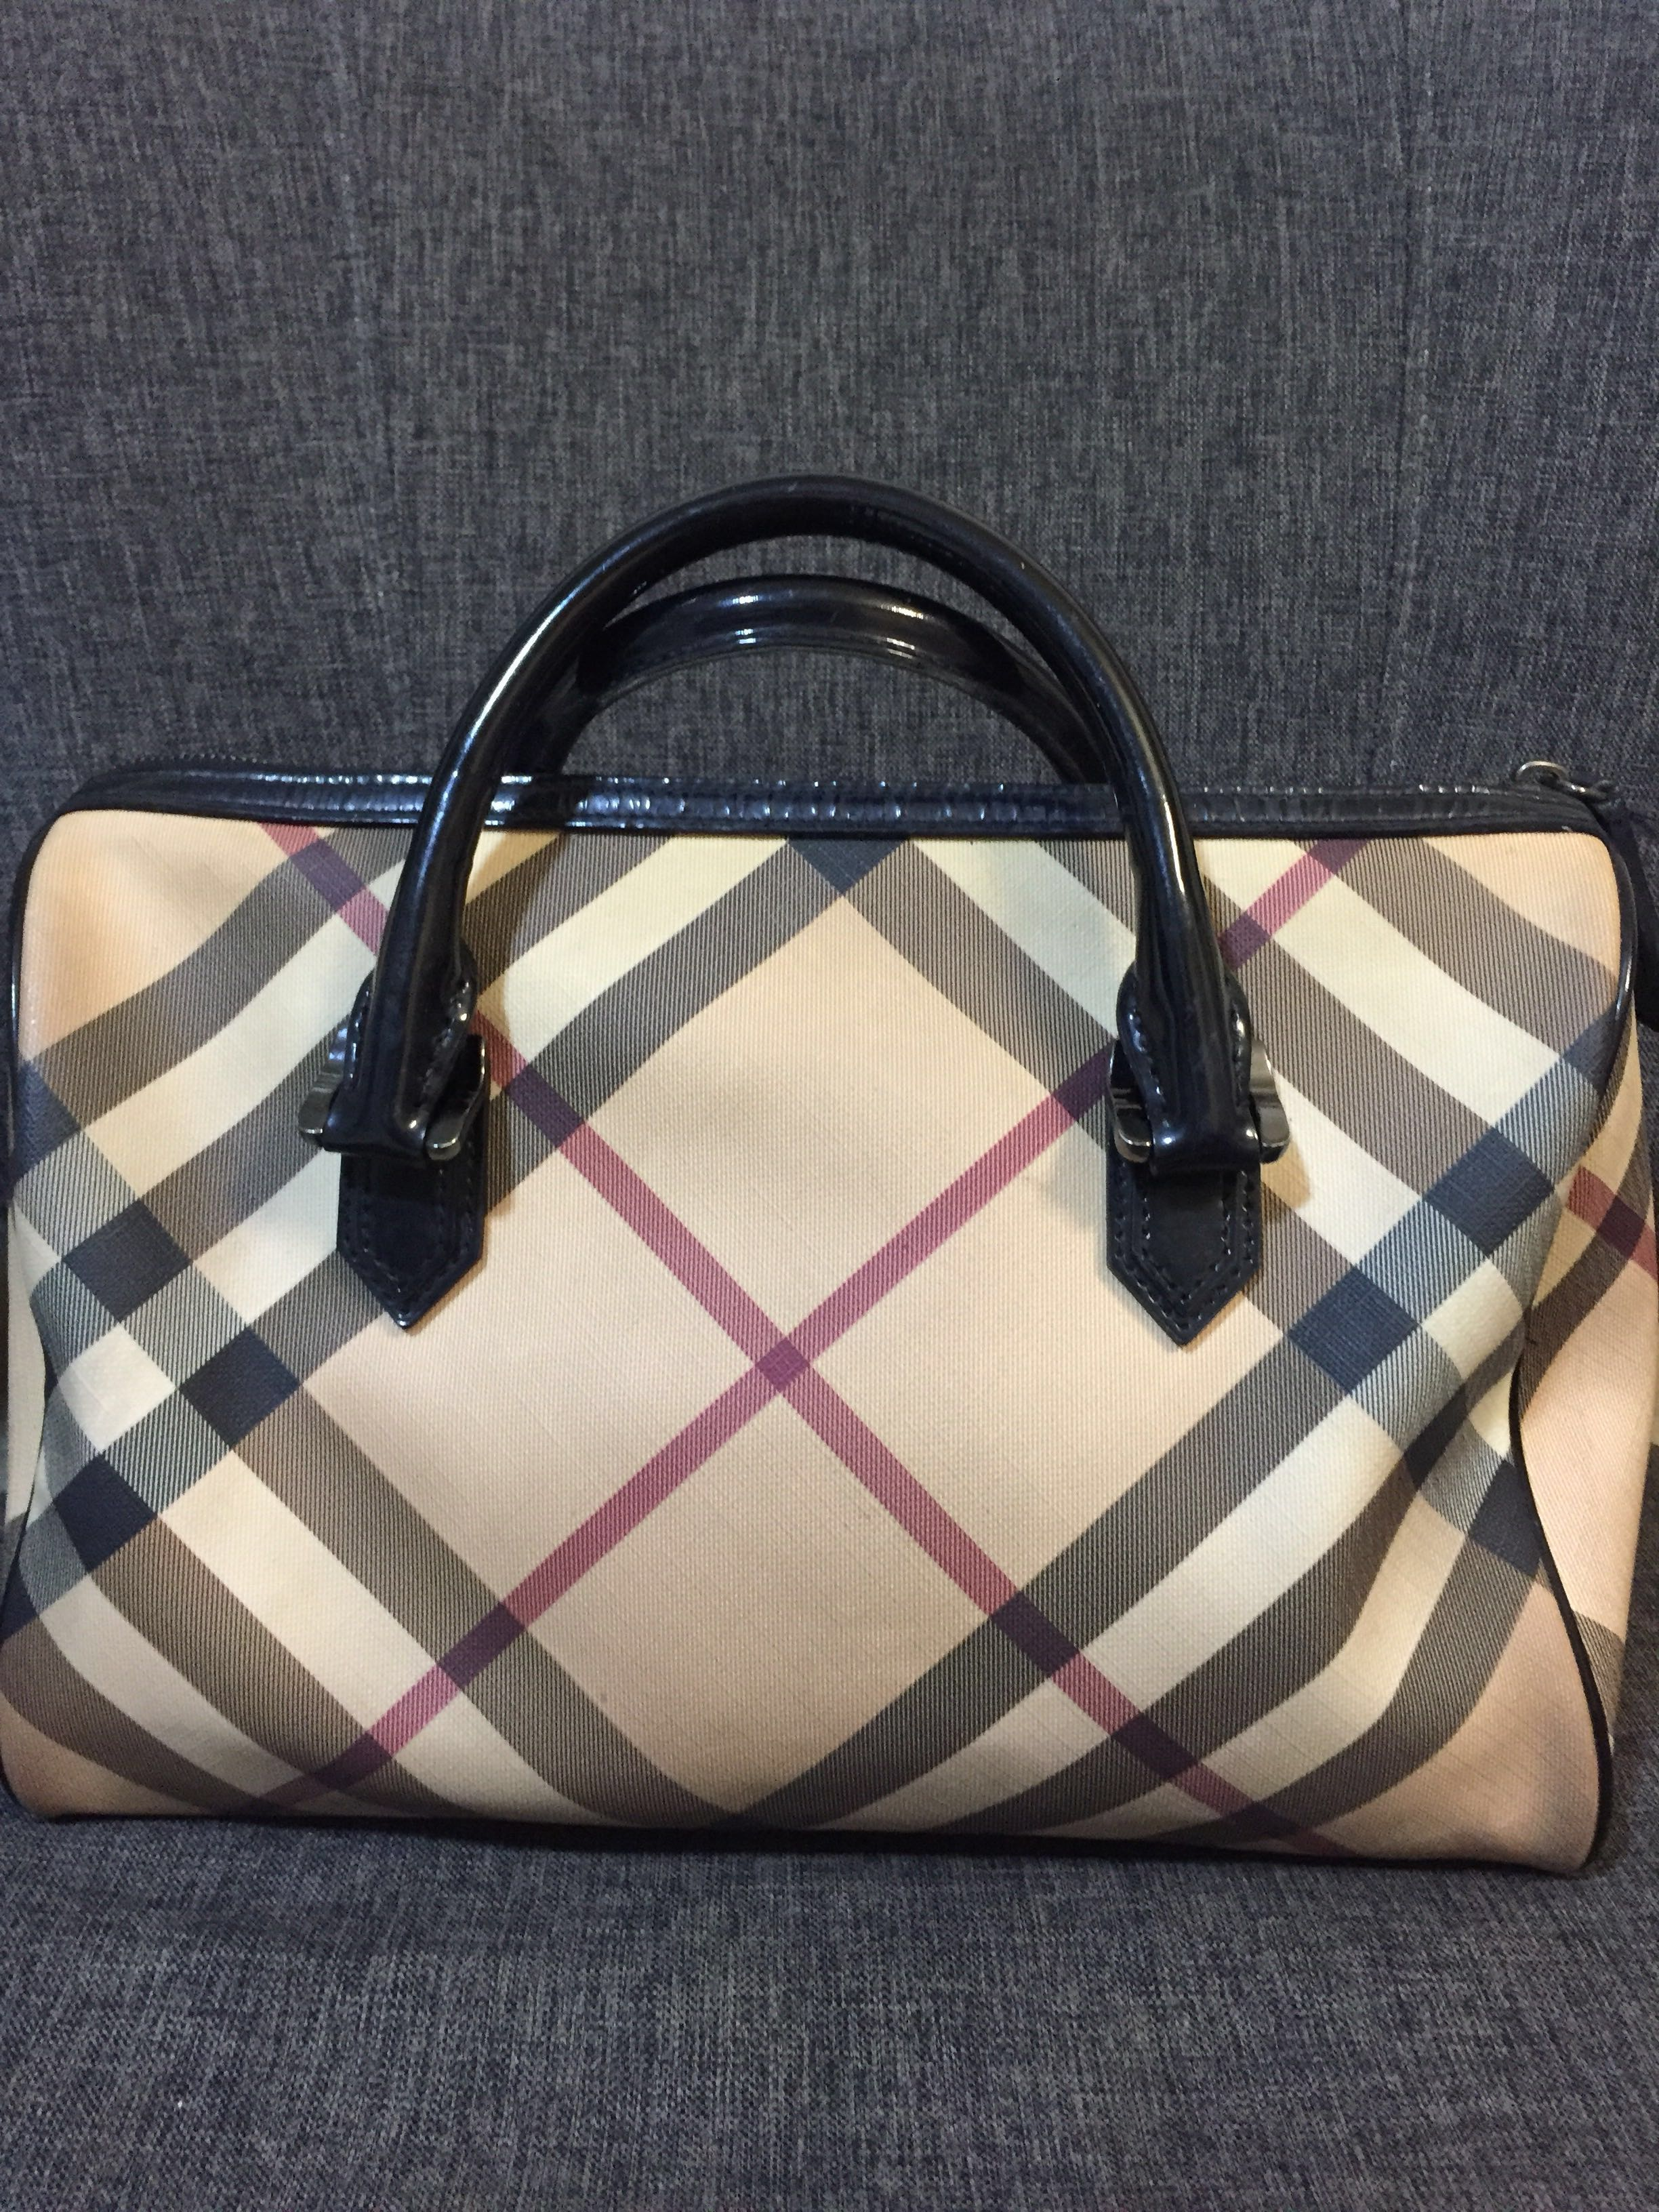 5d813dd44957 Burberry Supernova Bowling Bag (Preloved)